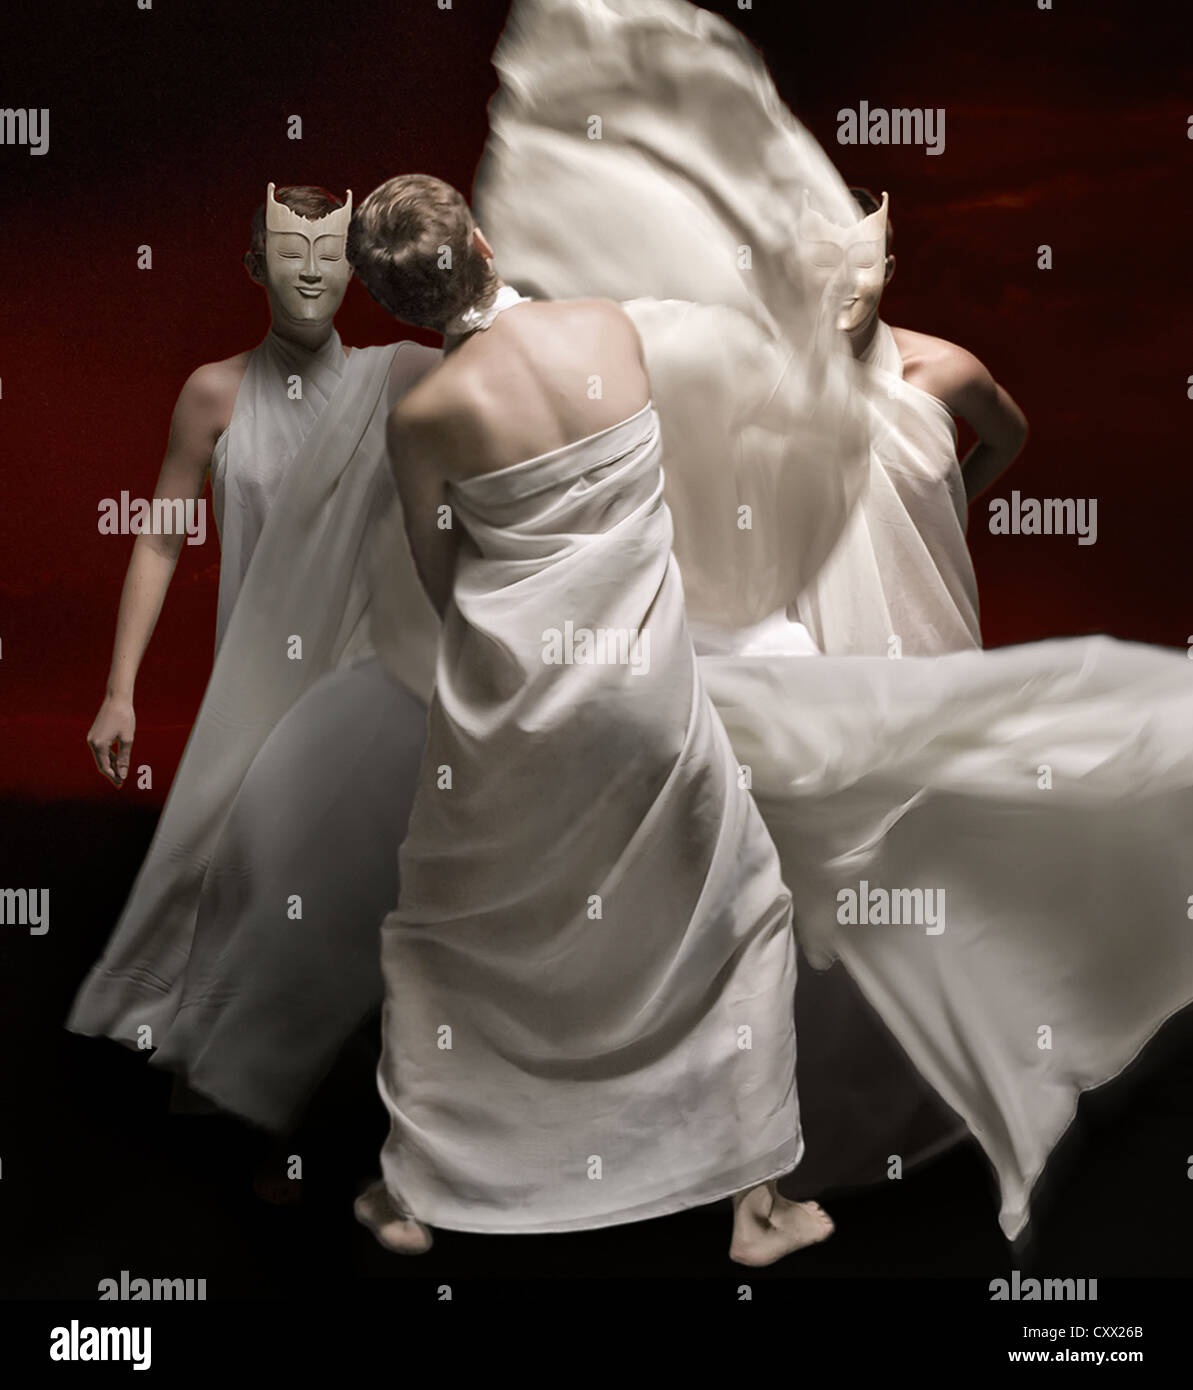 Dancers in flowing gowns perform under dramatic lighting amid a black backdrop - Stock Image